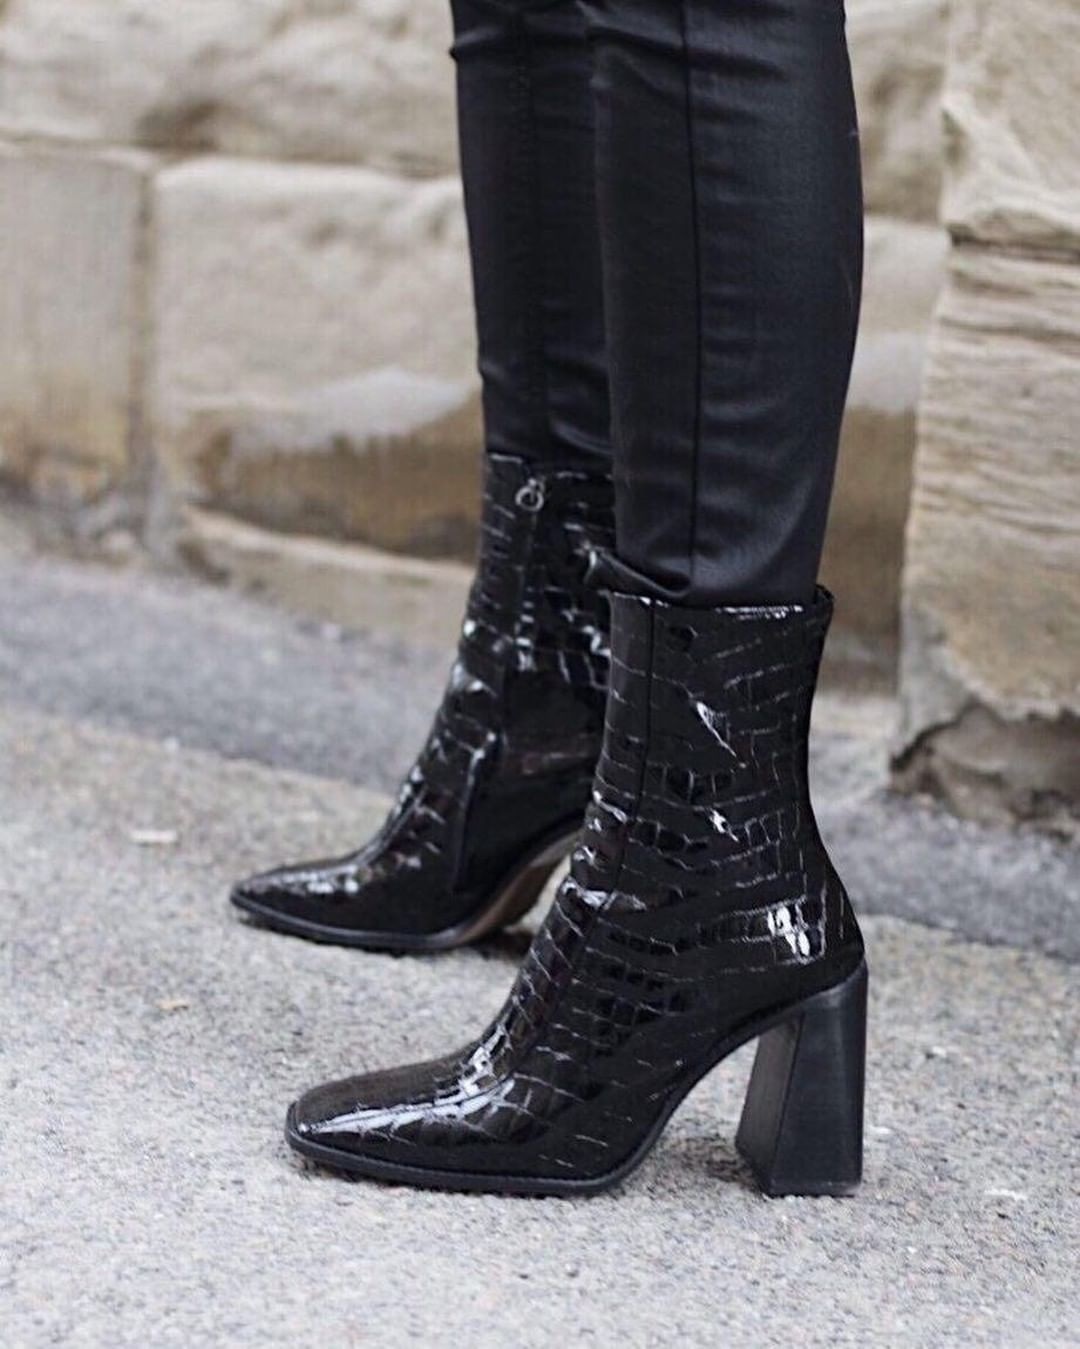 """6d07117376c Topshop on Instagram  """"Our love for the hurricane boots is only getting  stronger ❤👢 📷 anyabumag  TopshopStyle Tap to shop or shop via the 🔗 in  bio."""""""